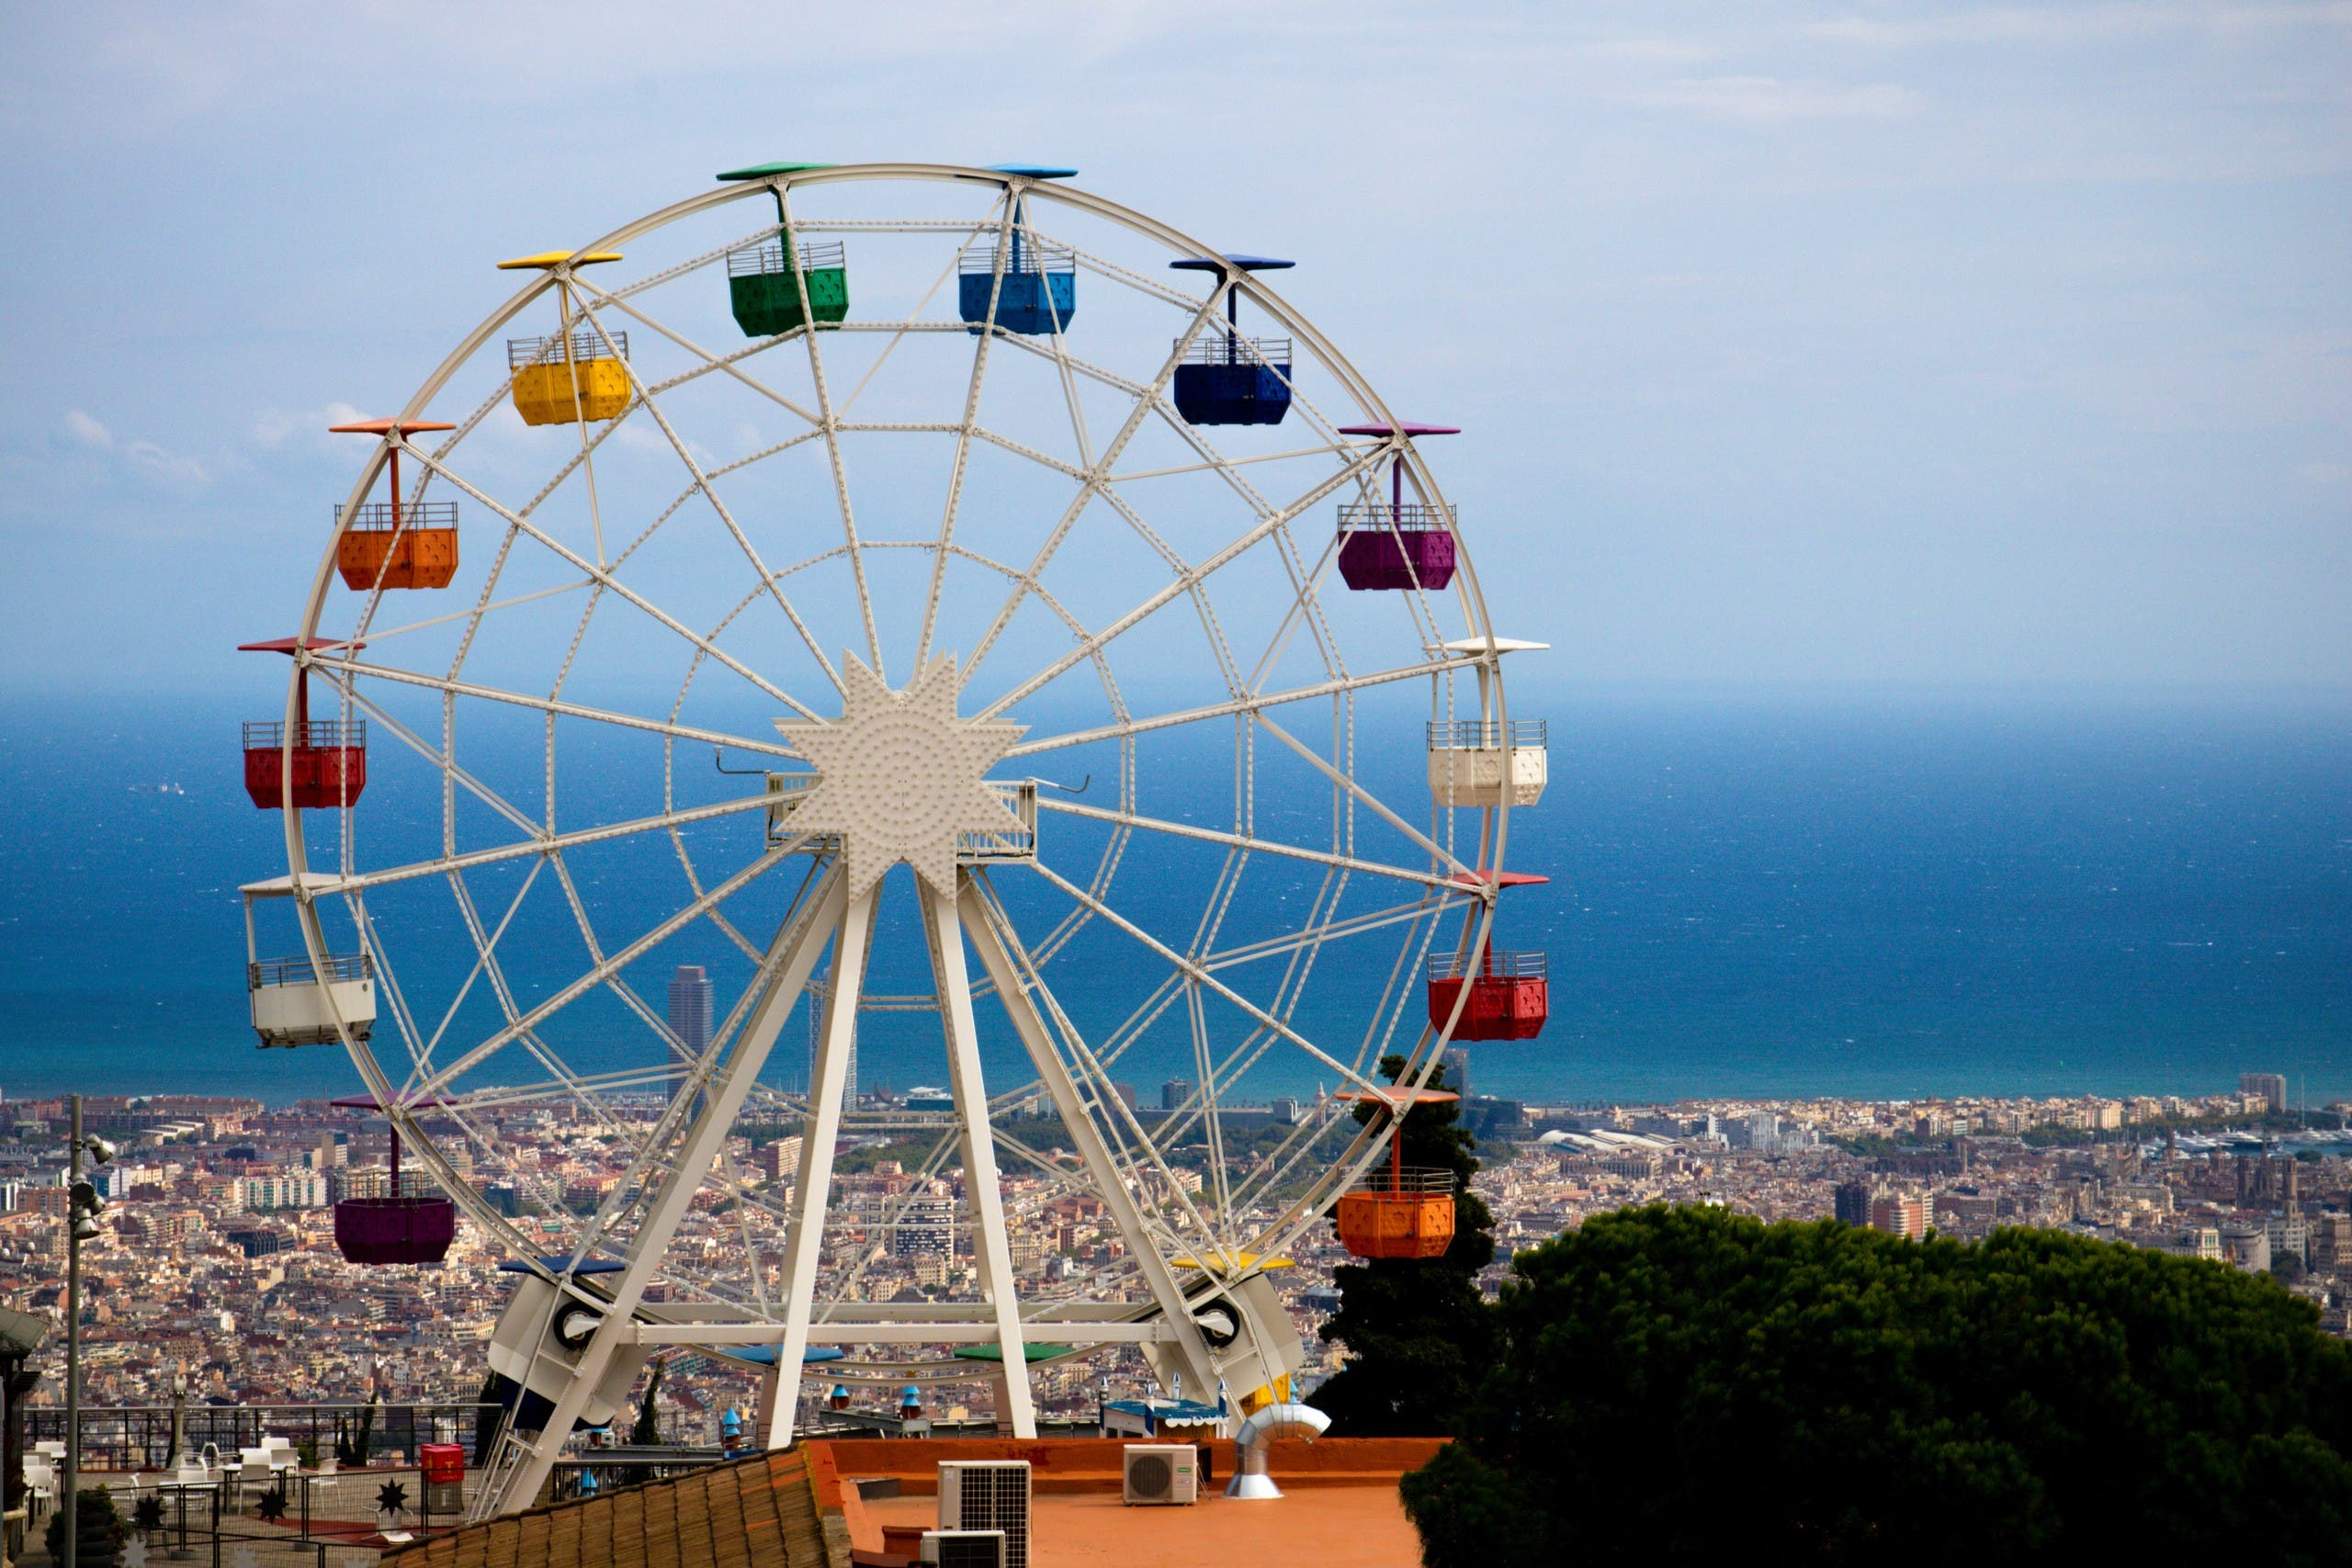 A staple of amusement parks worldwide, the Ferris wheel was first unveiled at the Chicago Expo in 1893. (Unsplash)